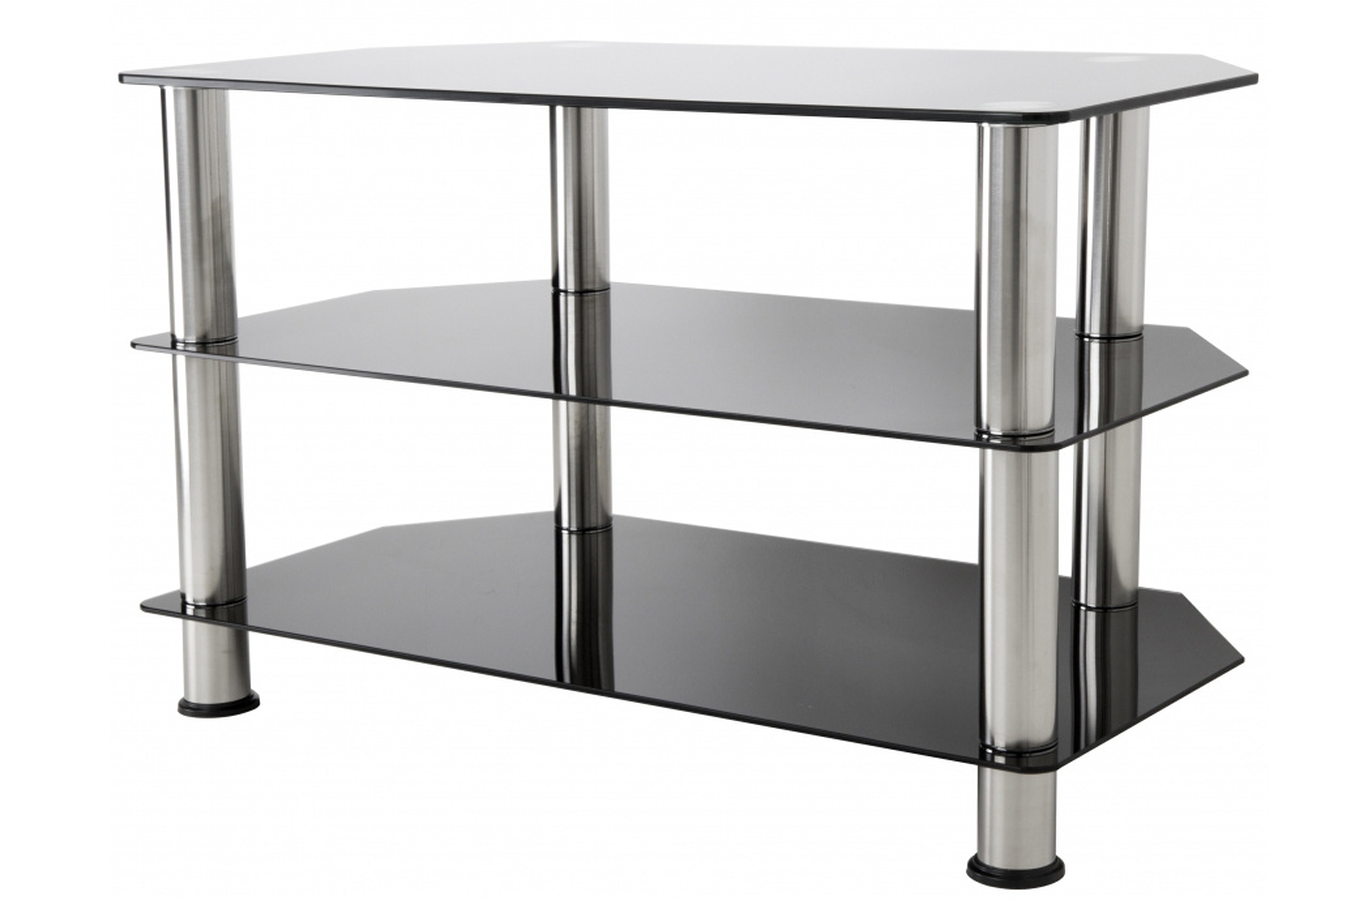 Table Roulette Ikea Excellent Table De Lit Ikea Table De Lit  # Table Tv En Verre Design